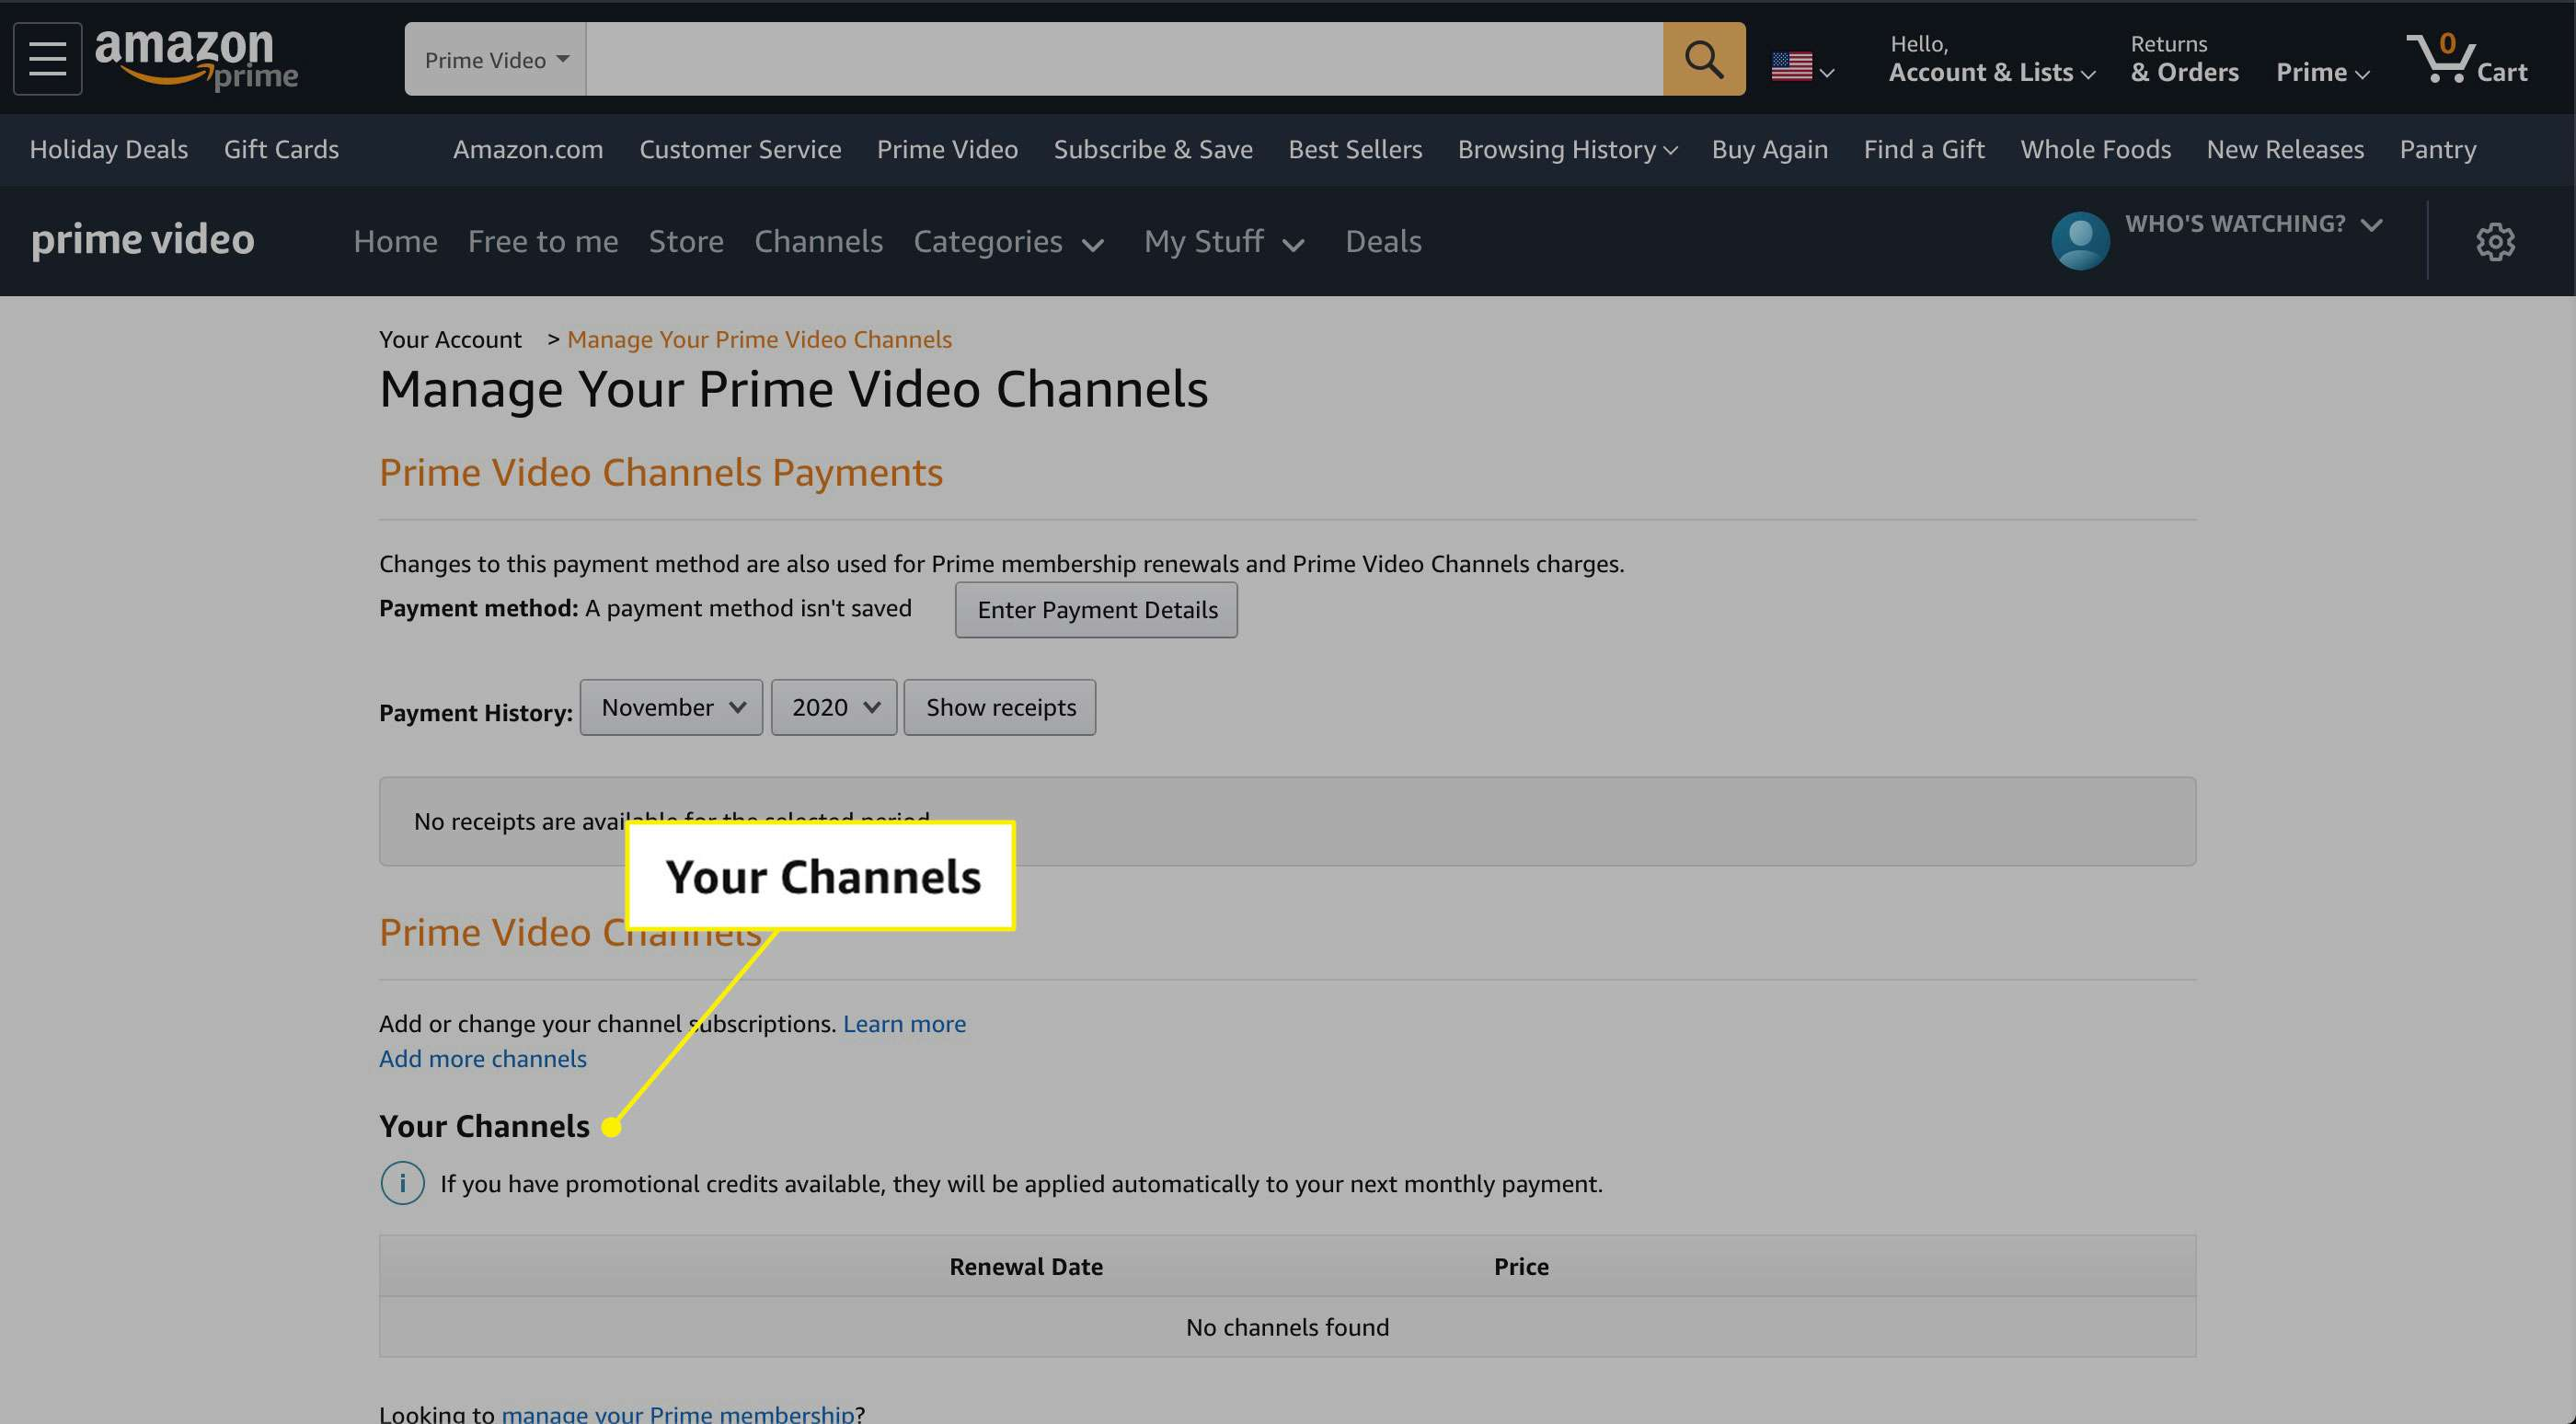 Your Channels on Amazon